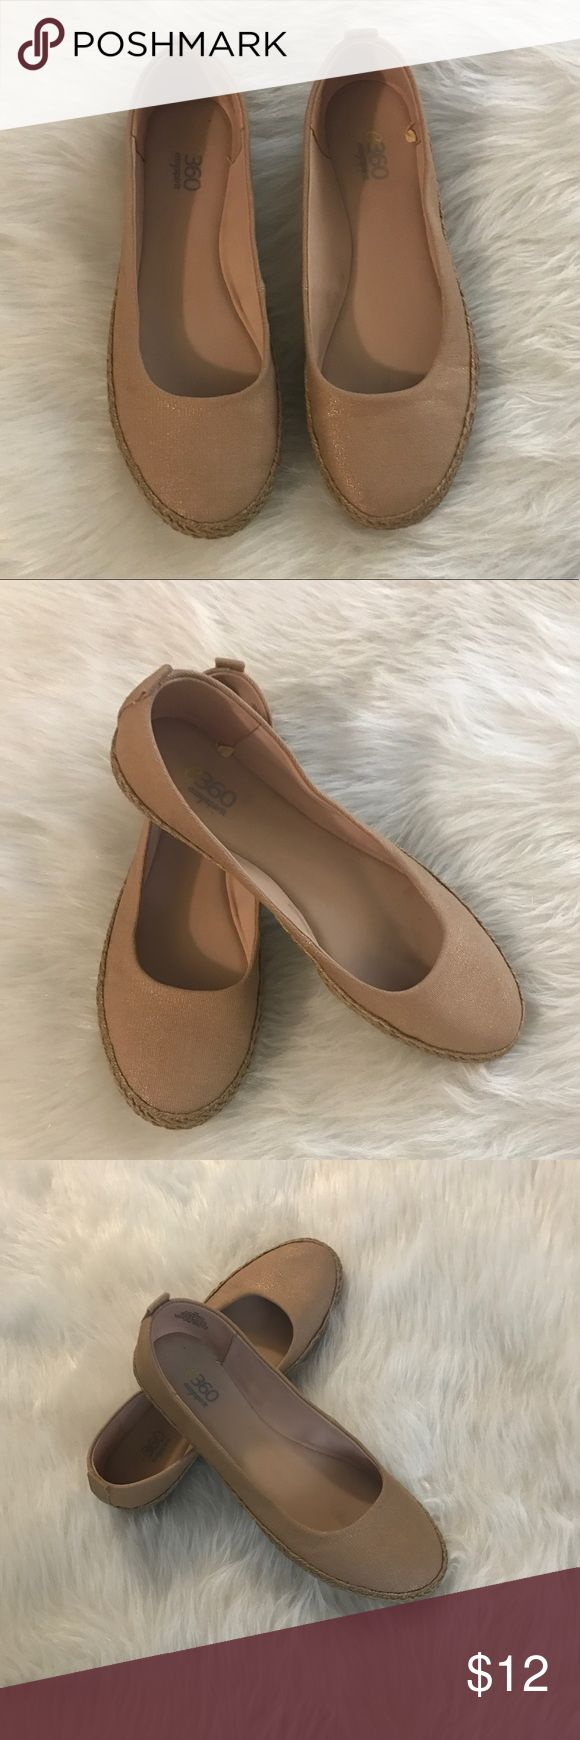 Easy Spirit flats in tan/gold color( See photos) Flats in good condition see pics Easy Spirit Shoes Flats & Loafers